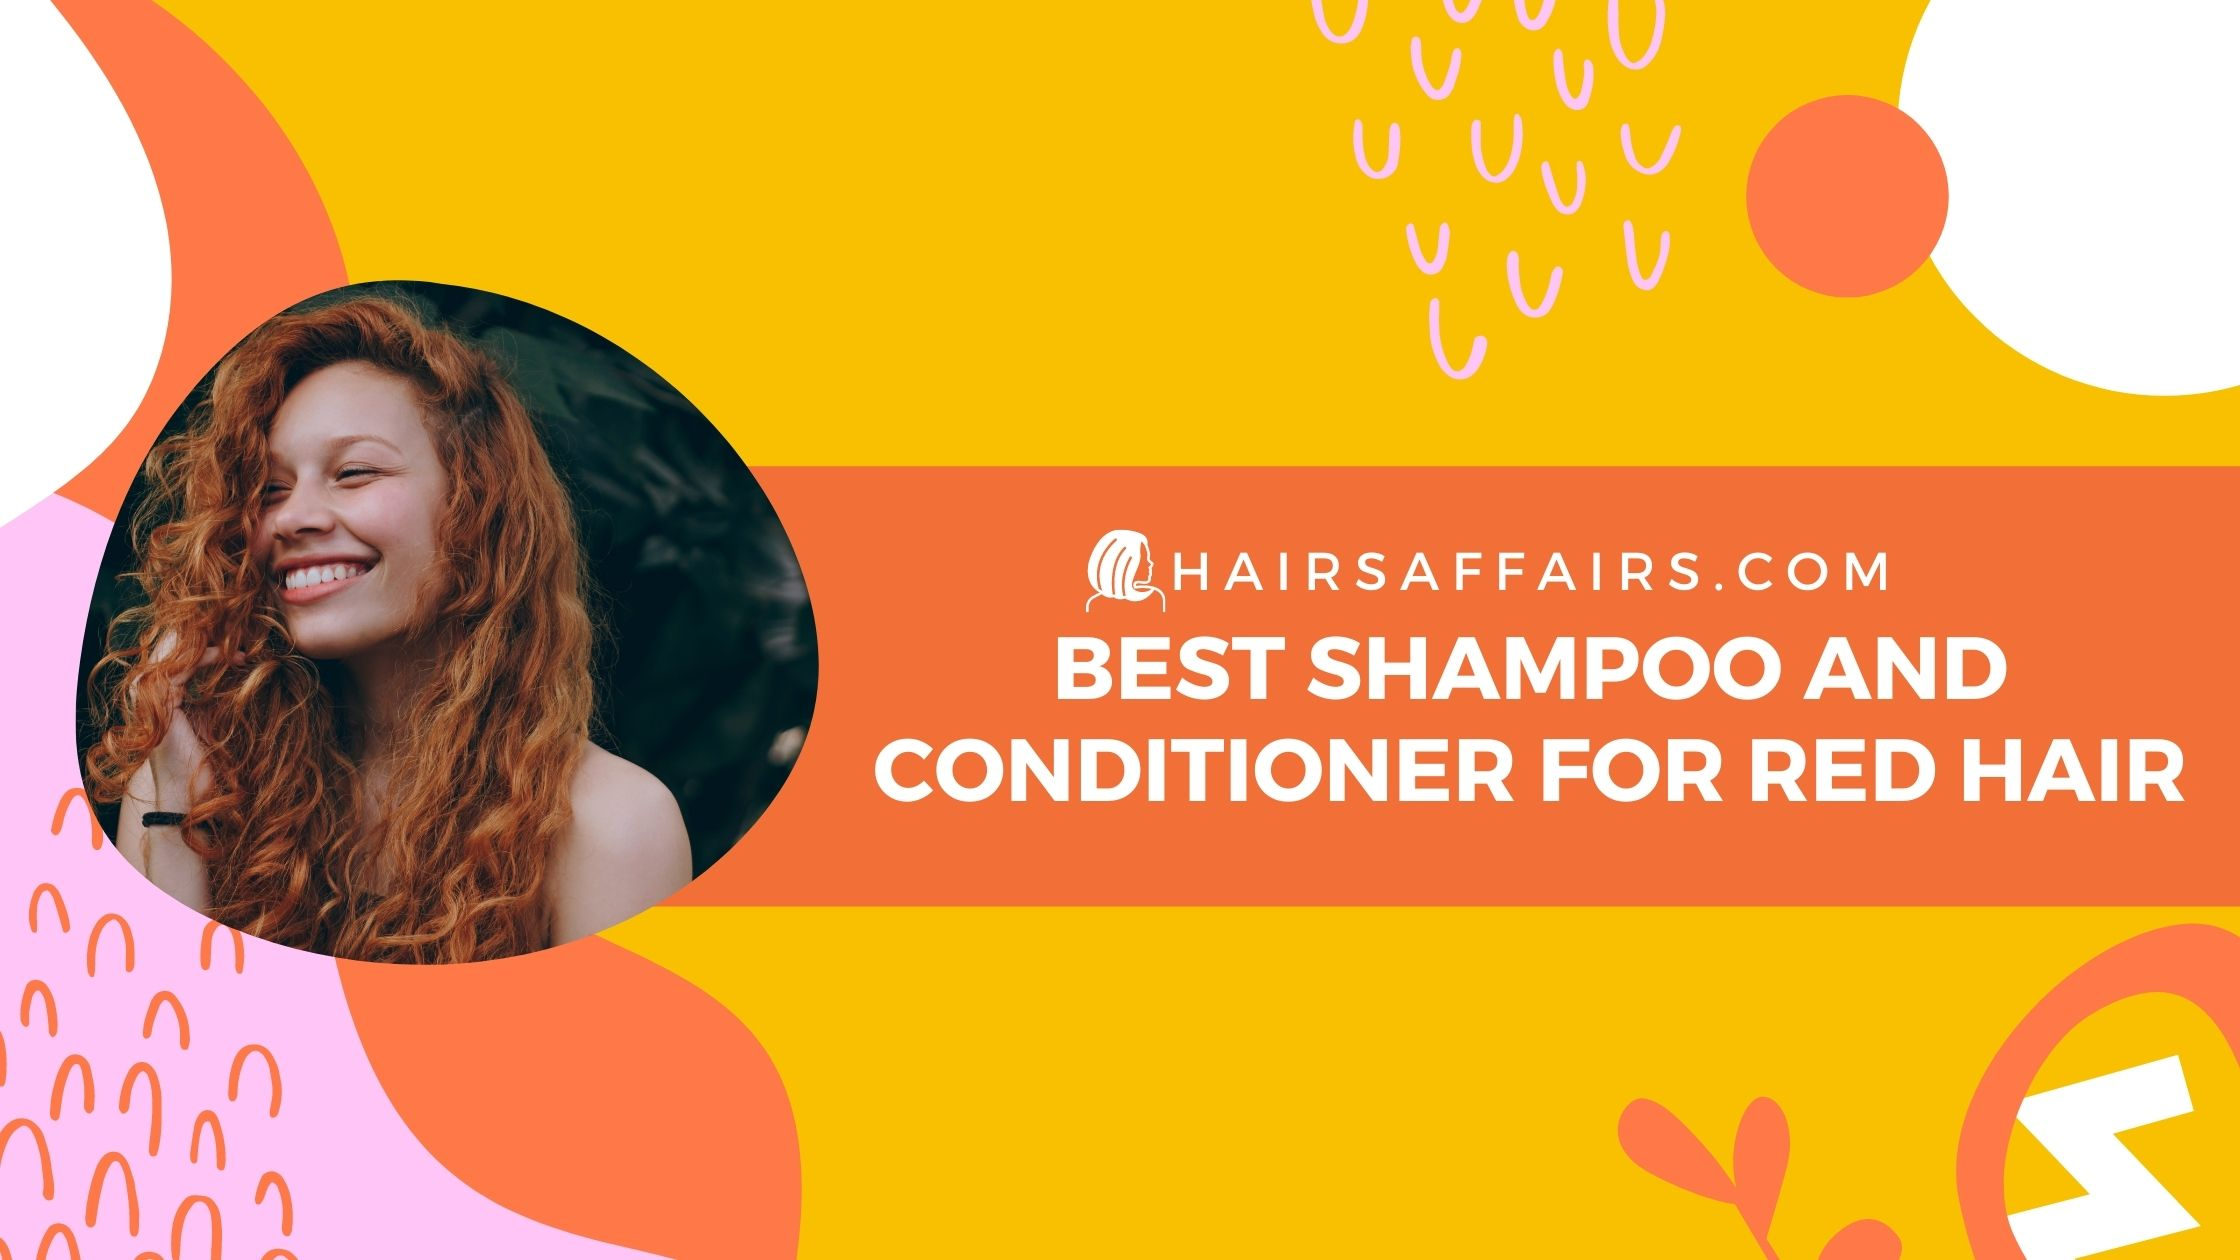 HA-Best-shampoo-and-conditioner-for-red-hair